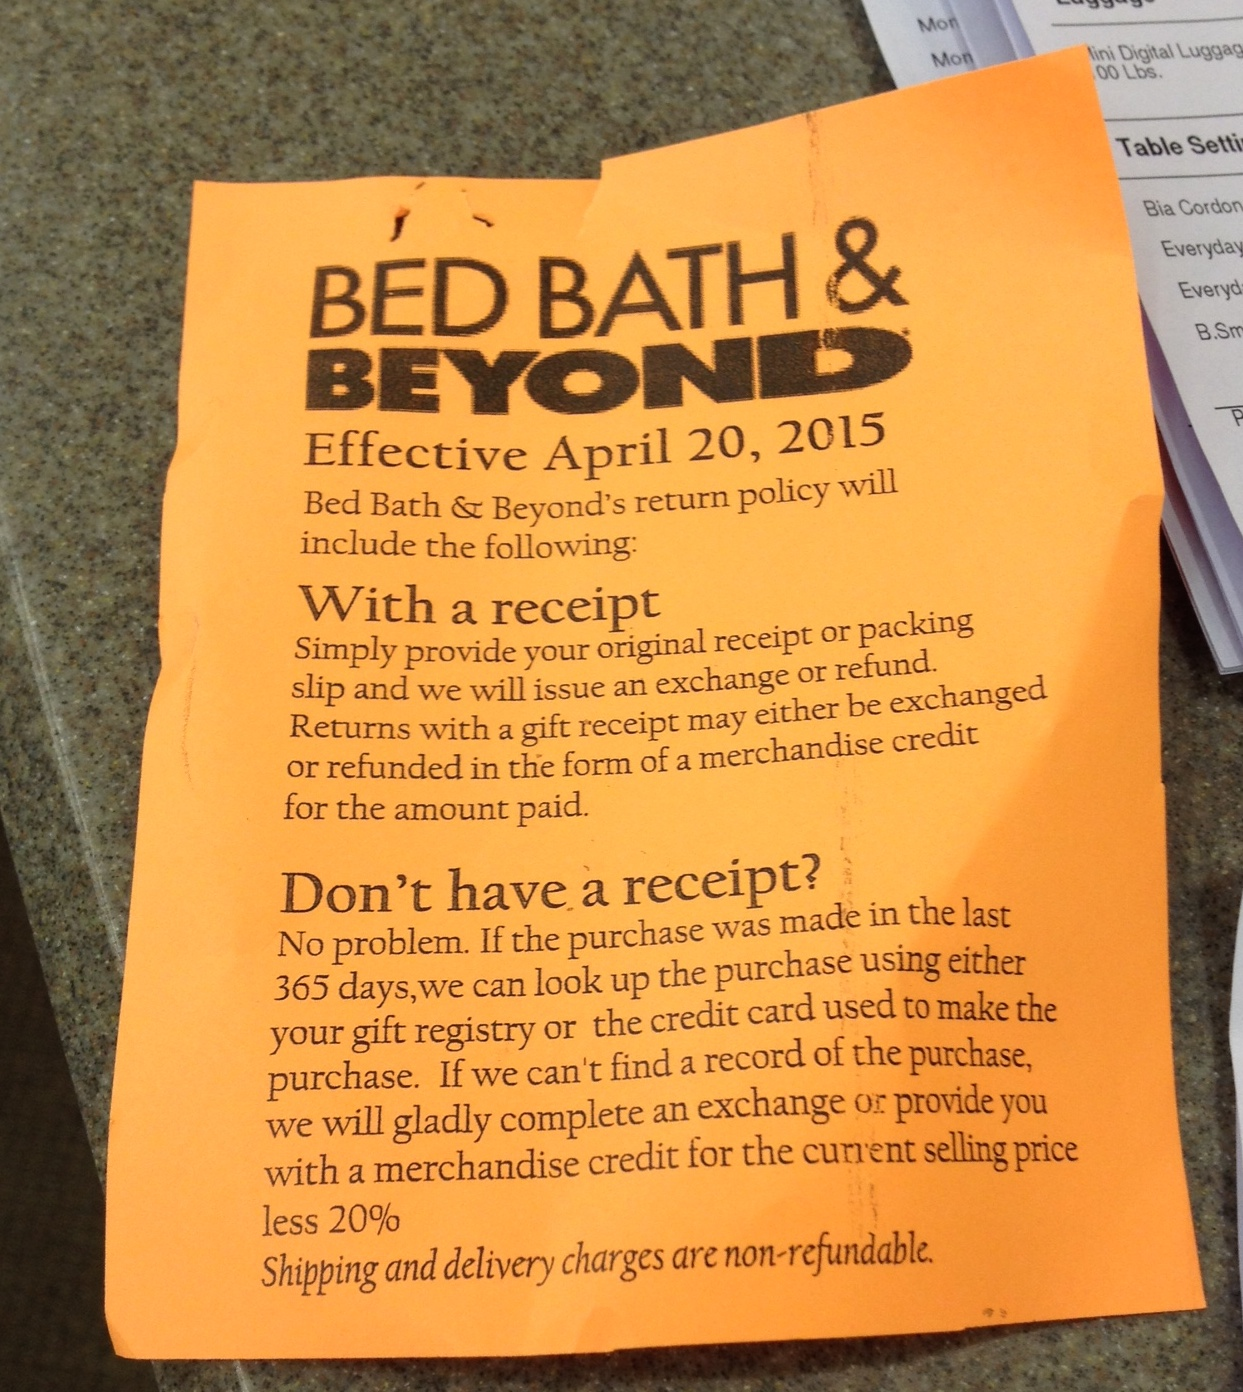 exclusive: say goodbye to bed bath & beyond's generous return